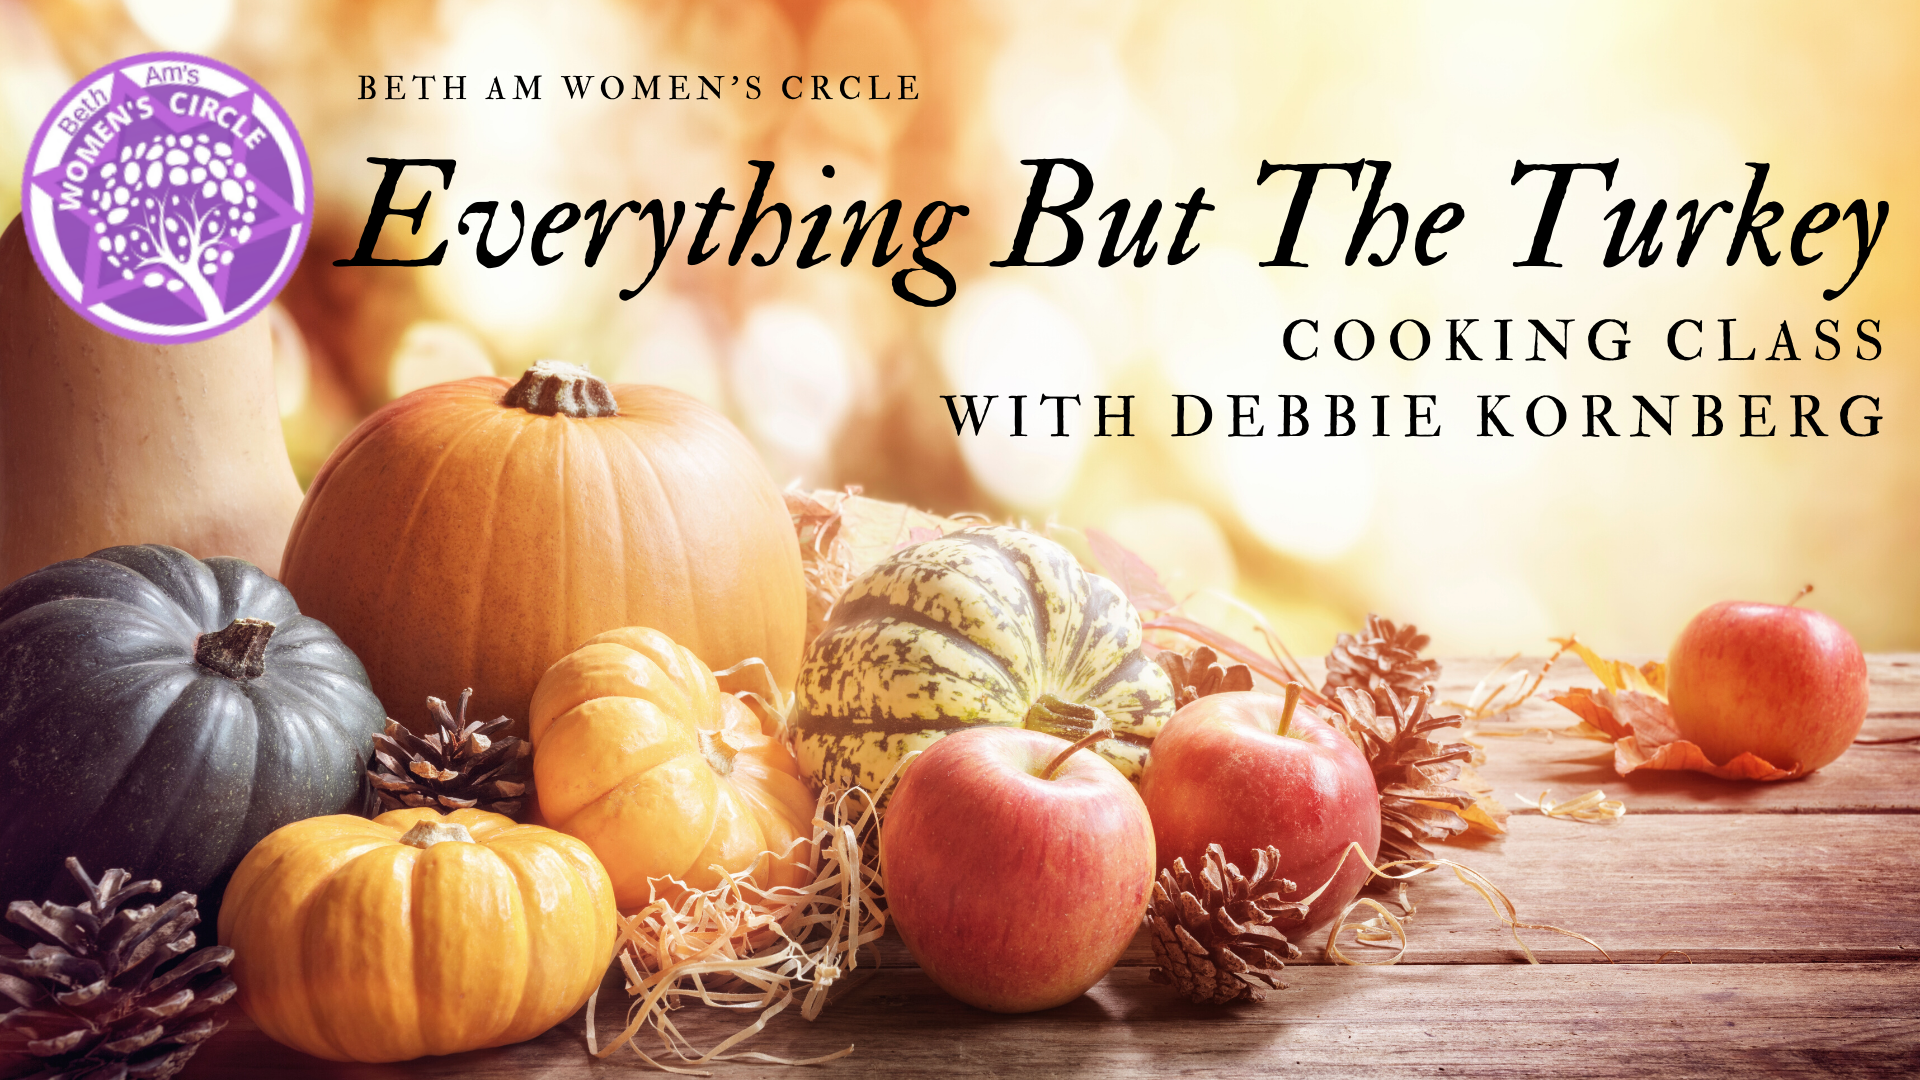 Banner Image for Women's Circle: Everything but the Turkey Cooking Class with Debbie Kornberg